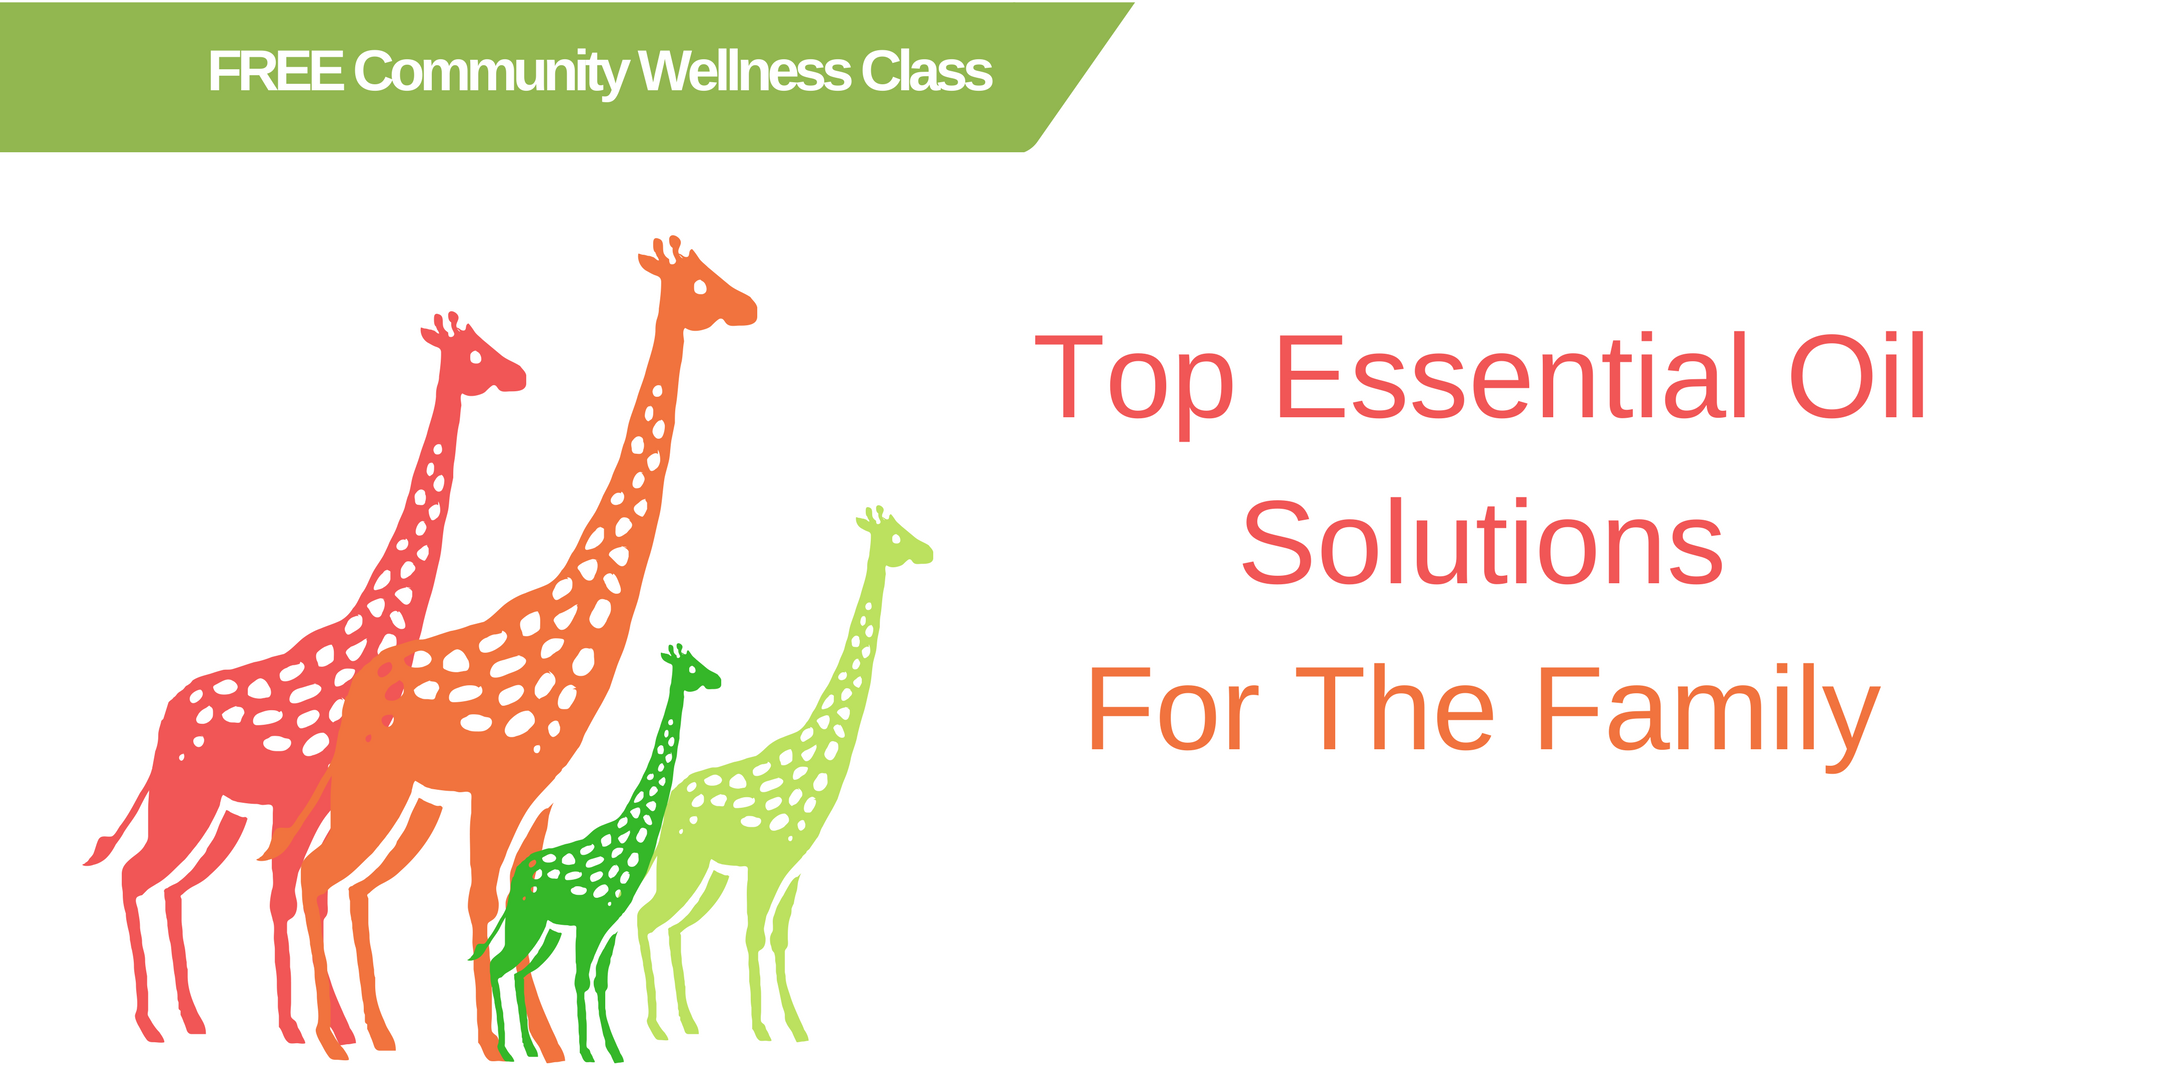 Top Essential Oil Solutions for the Family